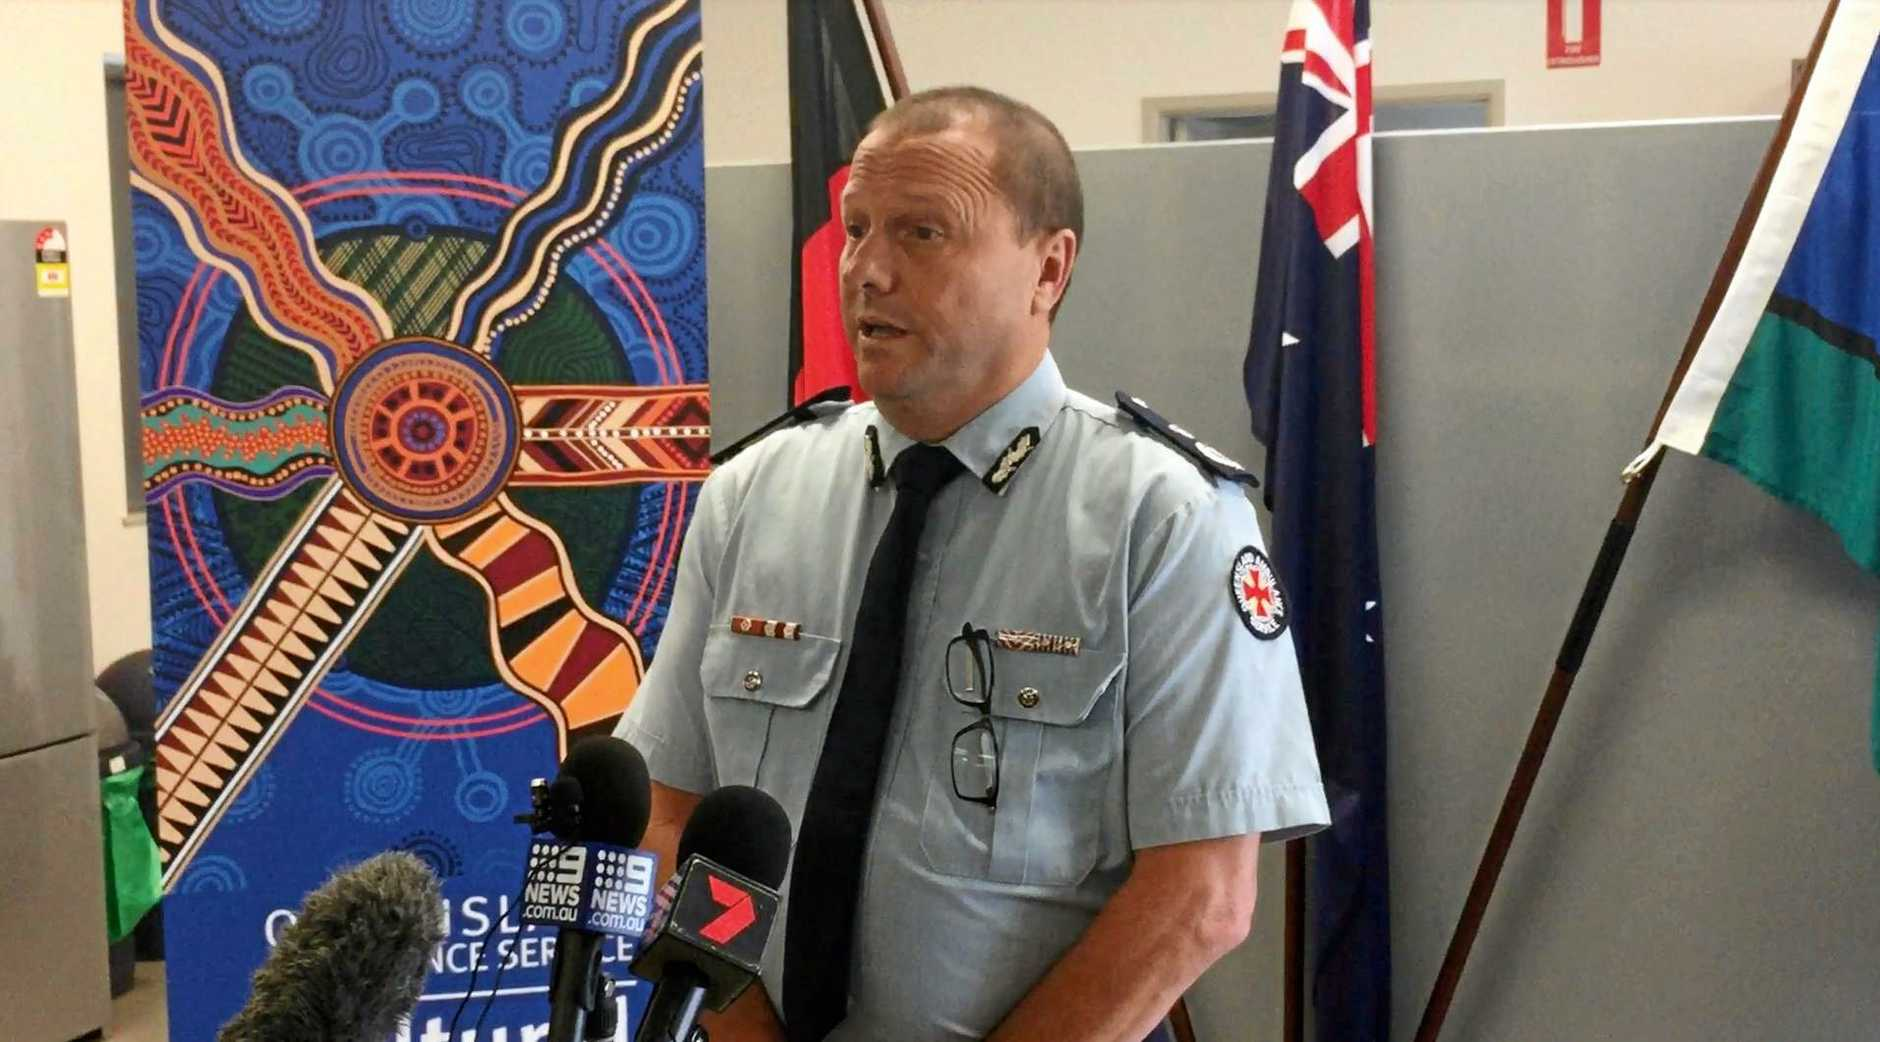 Queensland Ambulance Service commissioner Russell Bowles speaking after the death of paramedic Craig McCulloch in a traffic crash on Monday.